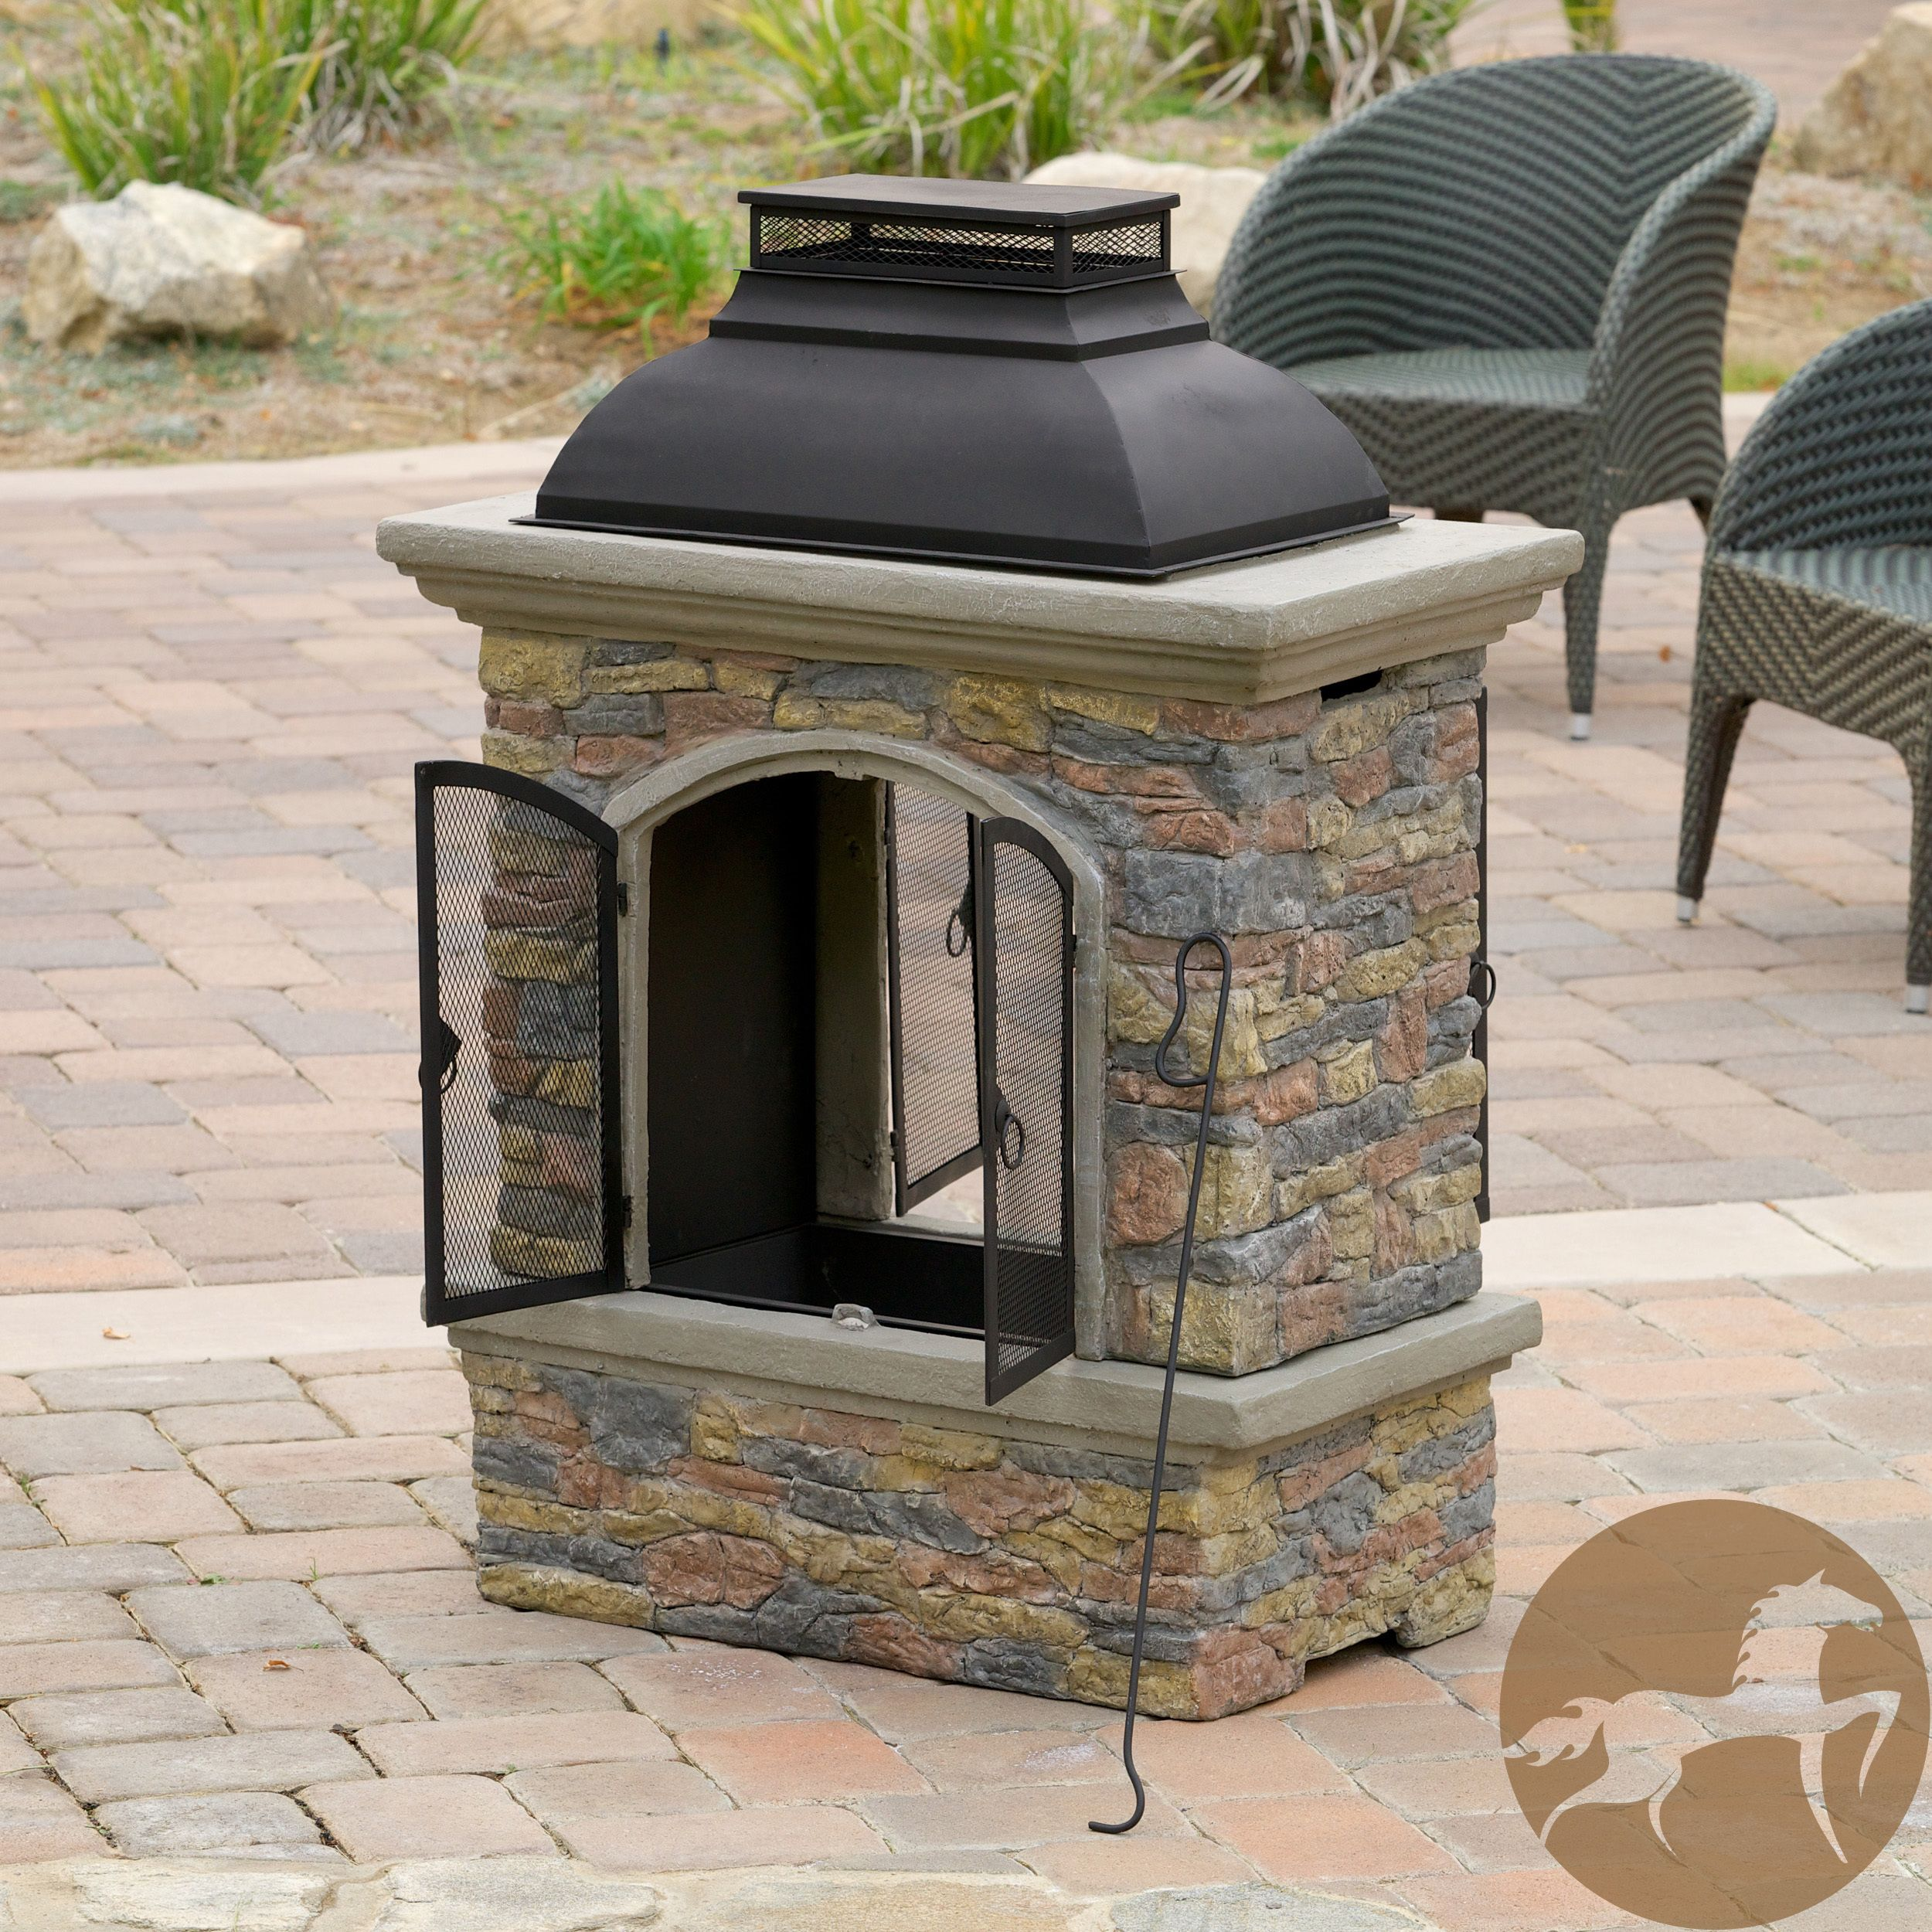 enjoy the outdoors with the luvan fireplace constructed with fiber